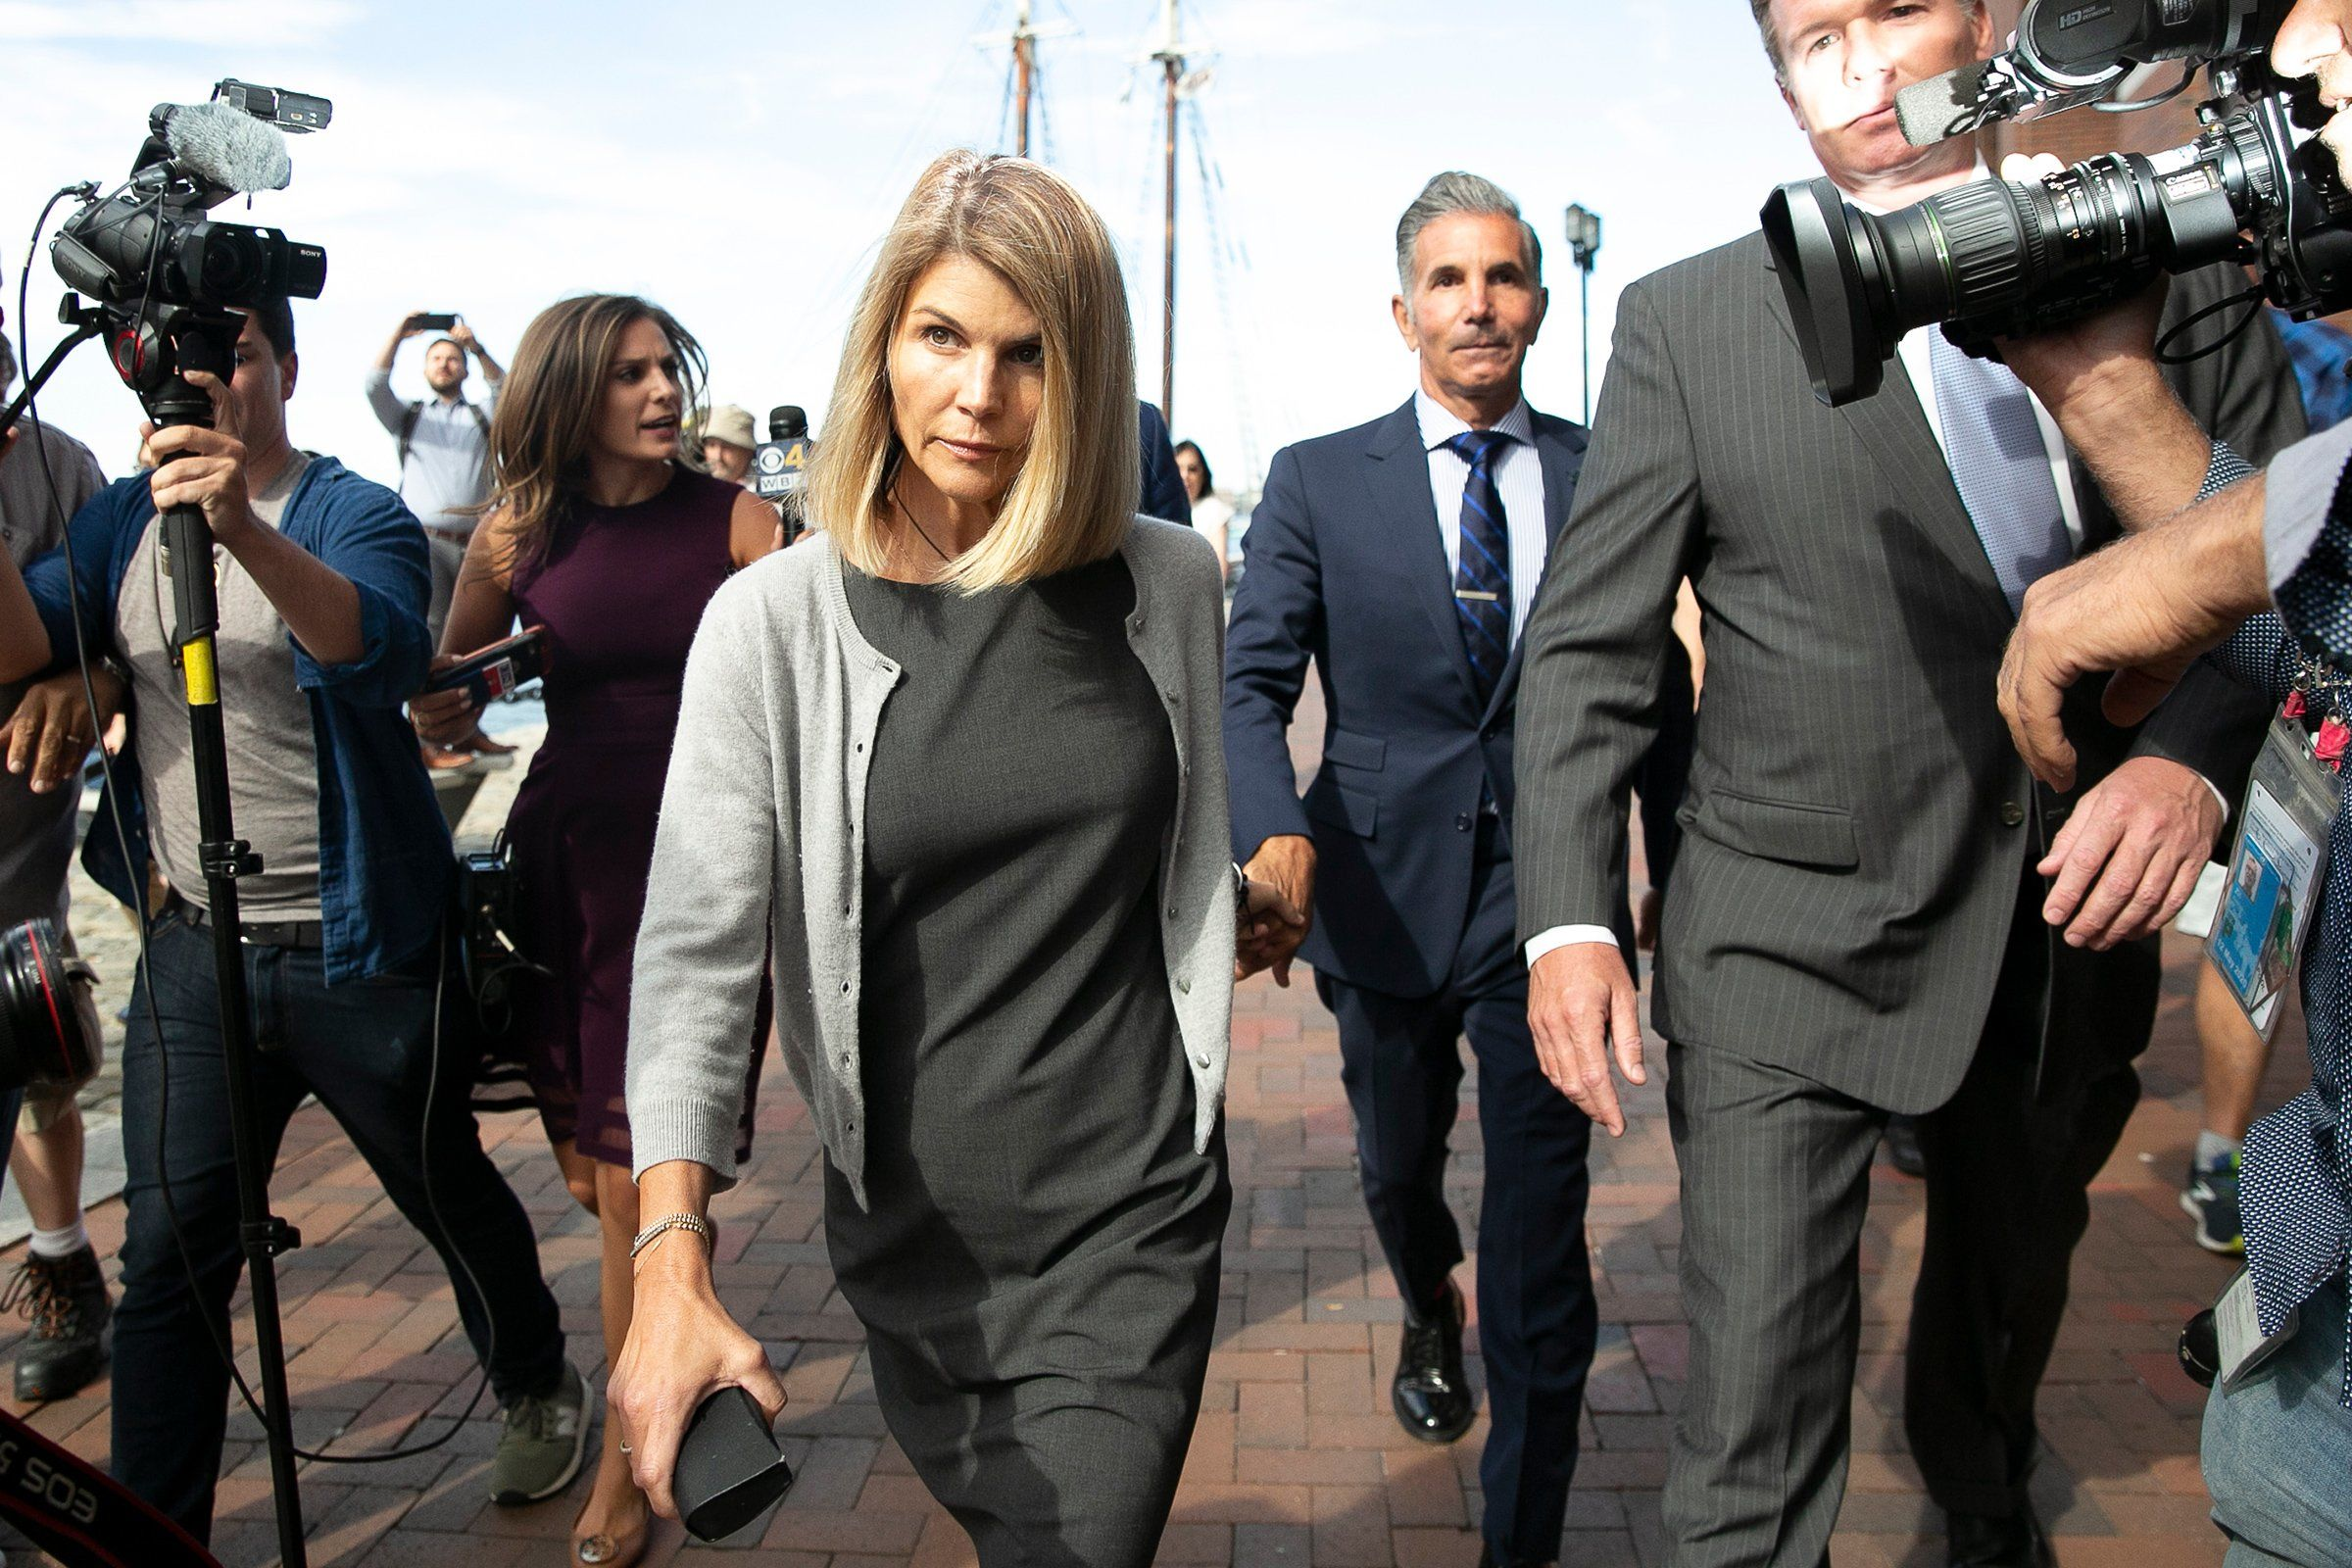 """Lori Loughlin and her husband, Mossimo Giannulli, leave federal court in Boston on Aug. 27. The """"Full House"""" actress and her fashion designer husband were charged with conspiring to pay bribes to get their daughters admitted to USC as recruits to the crew team."""